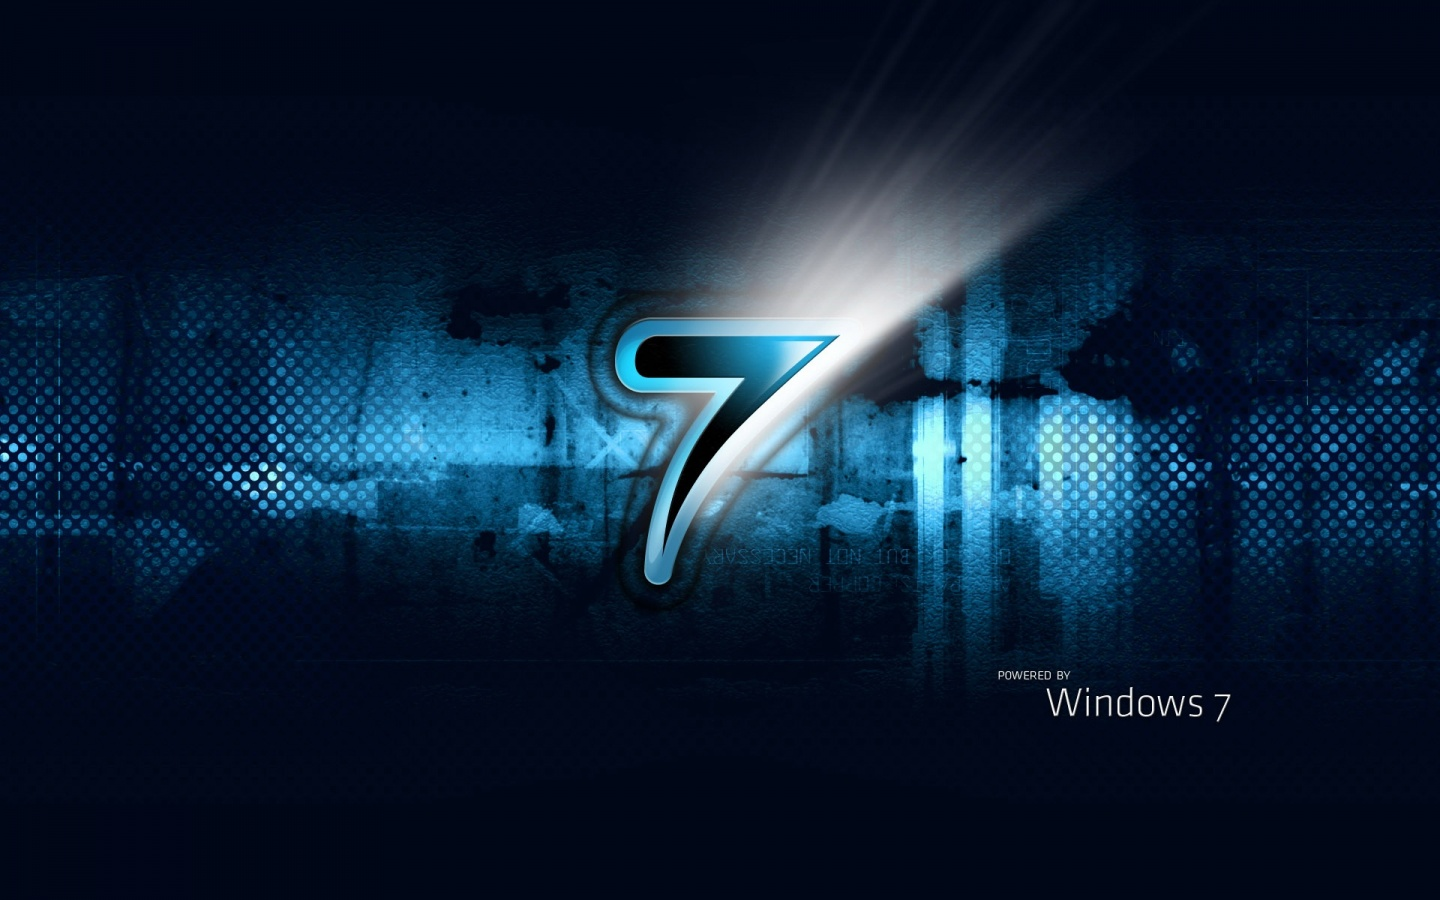 wall paper windows 7 - photo #5